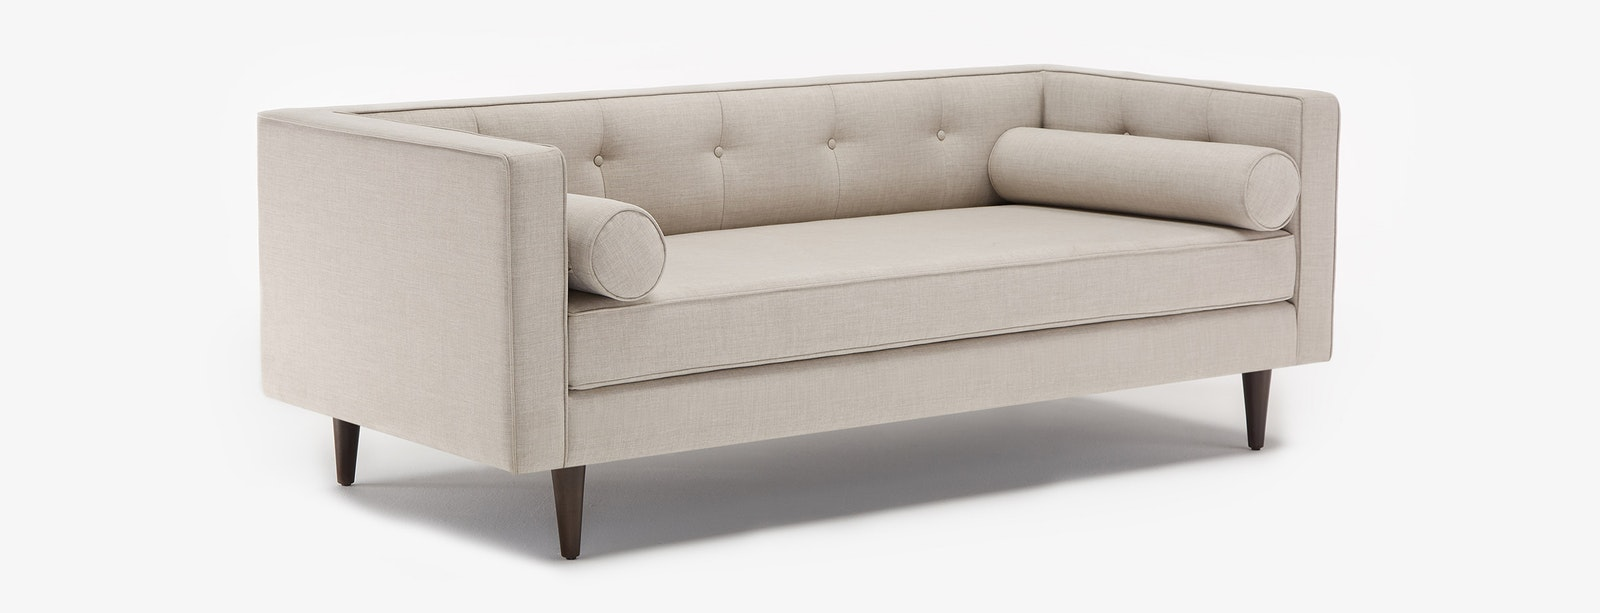 Braxton-Daybed-Bennet-Moon-T1-866